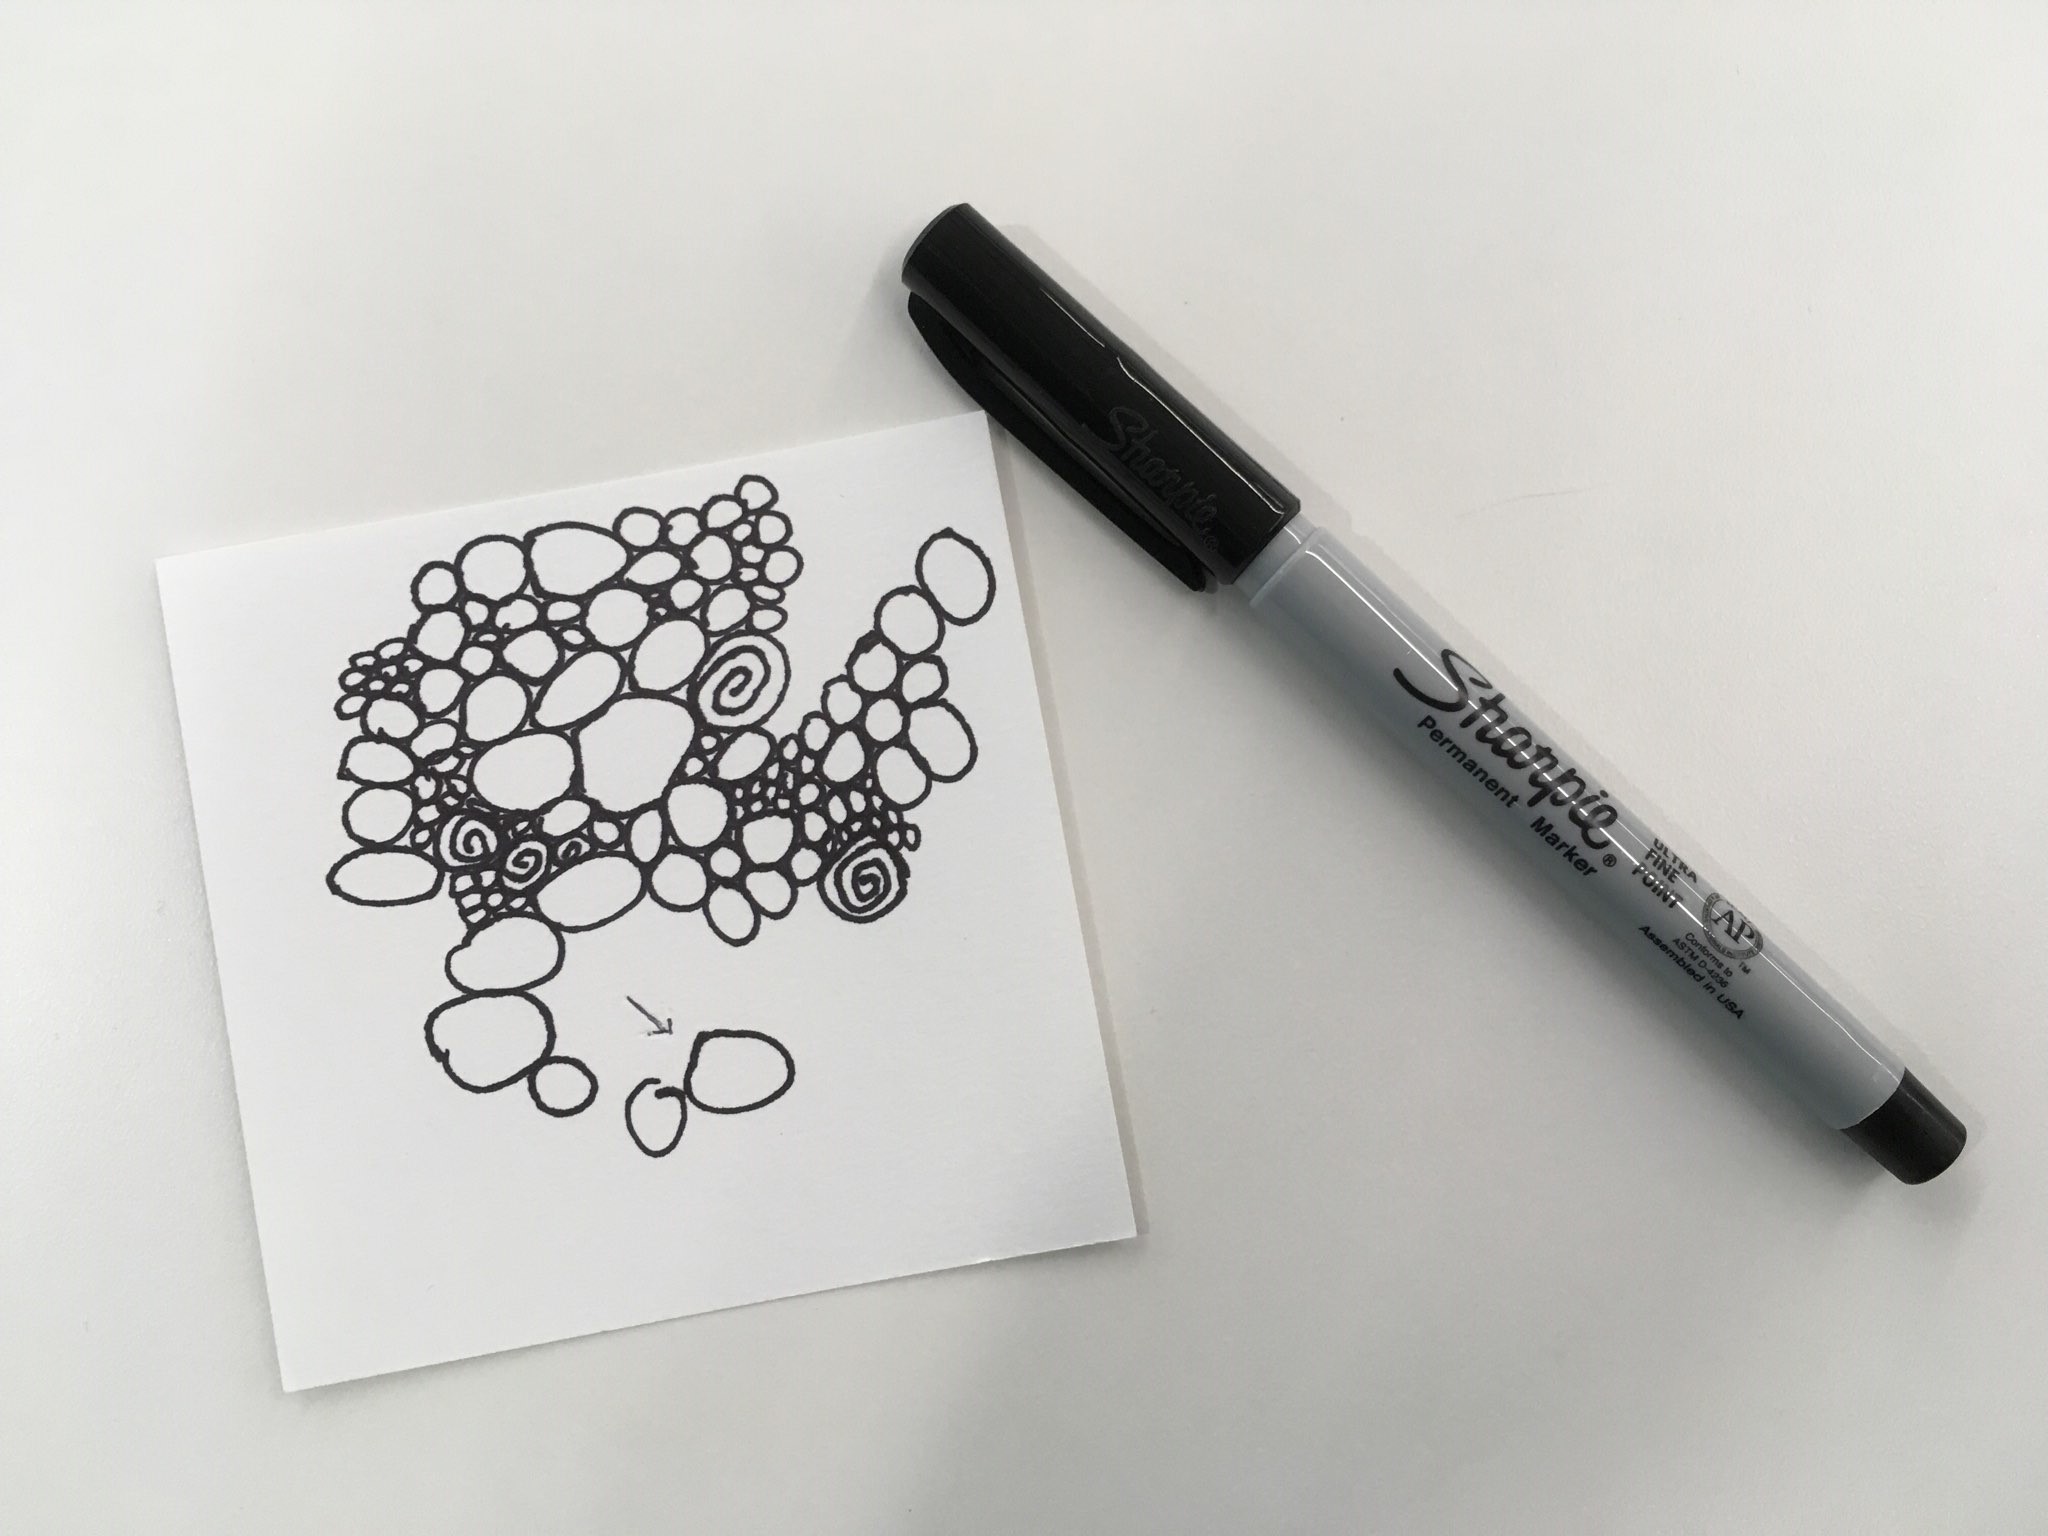 Paper square with more random circles in black ink.